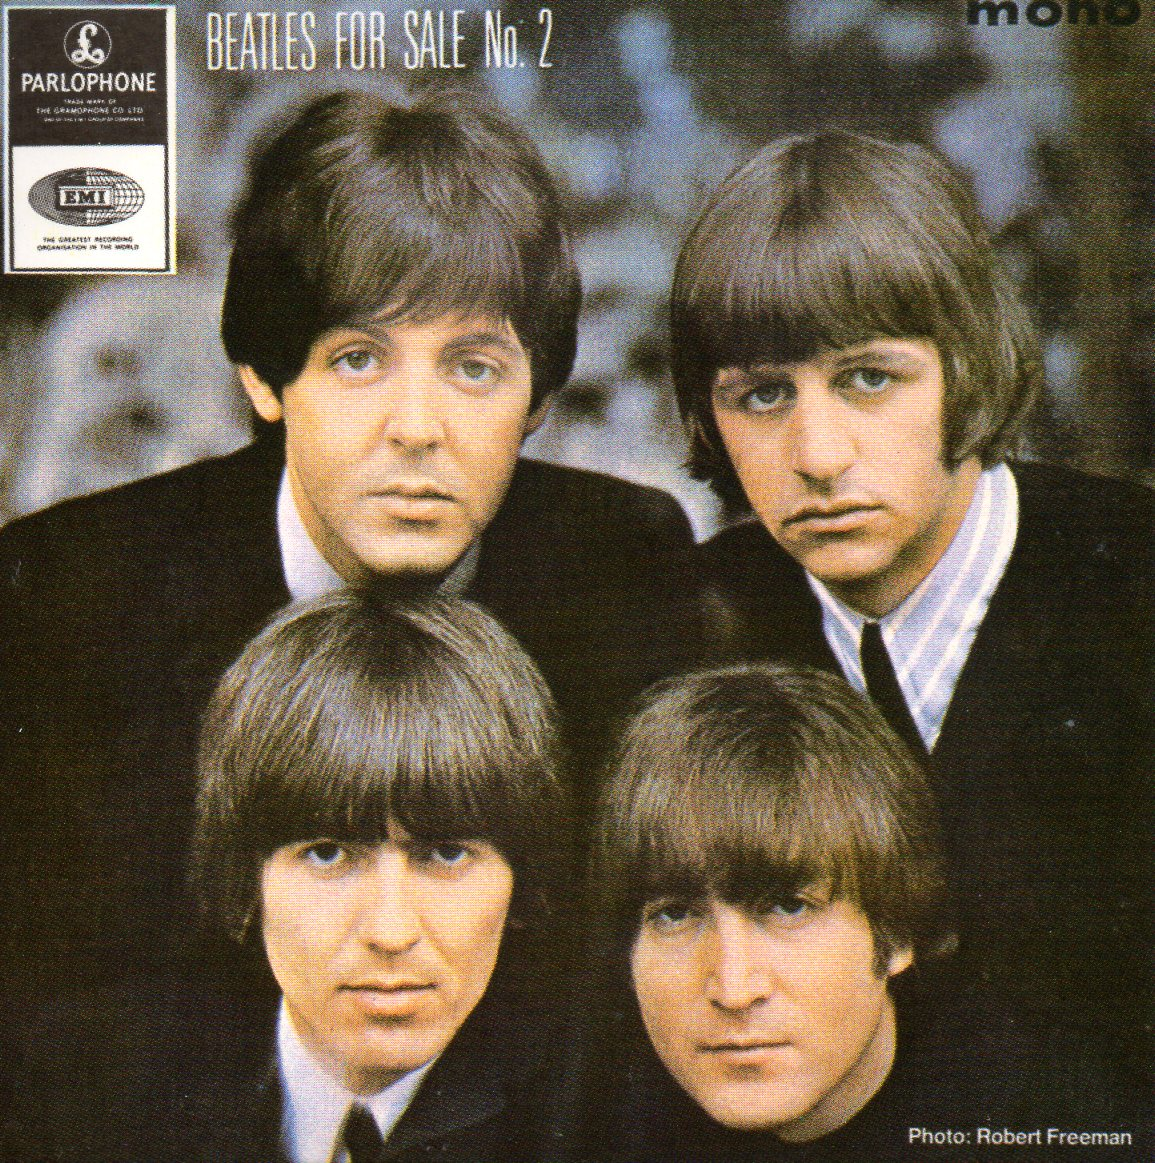 THE BEATLES - Beatles for sale (N°. 2) EP 4-TRACK CARD SLEEVE - CD single